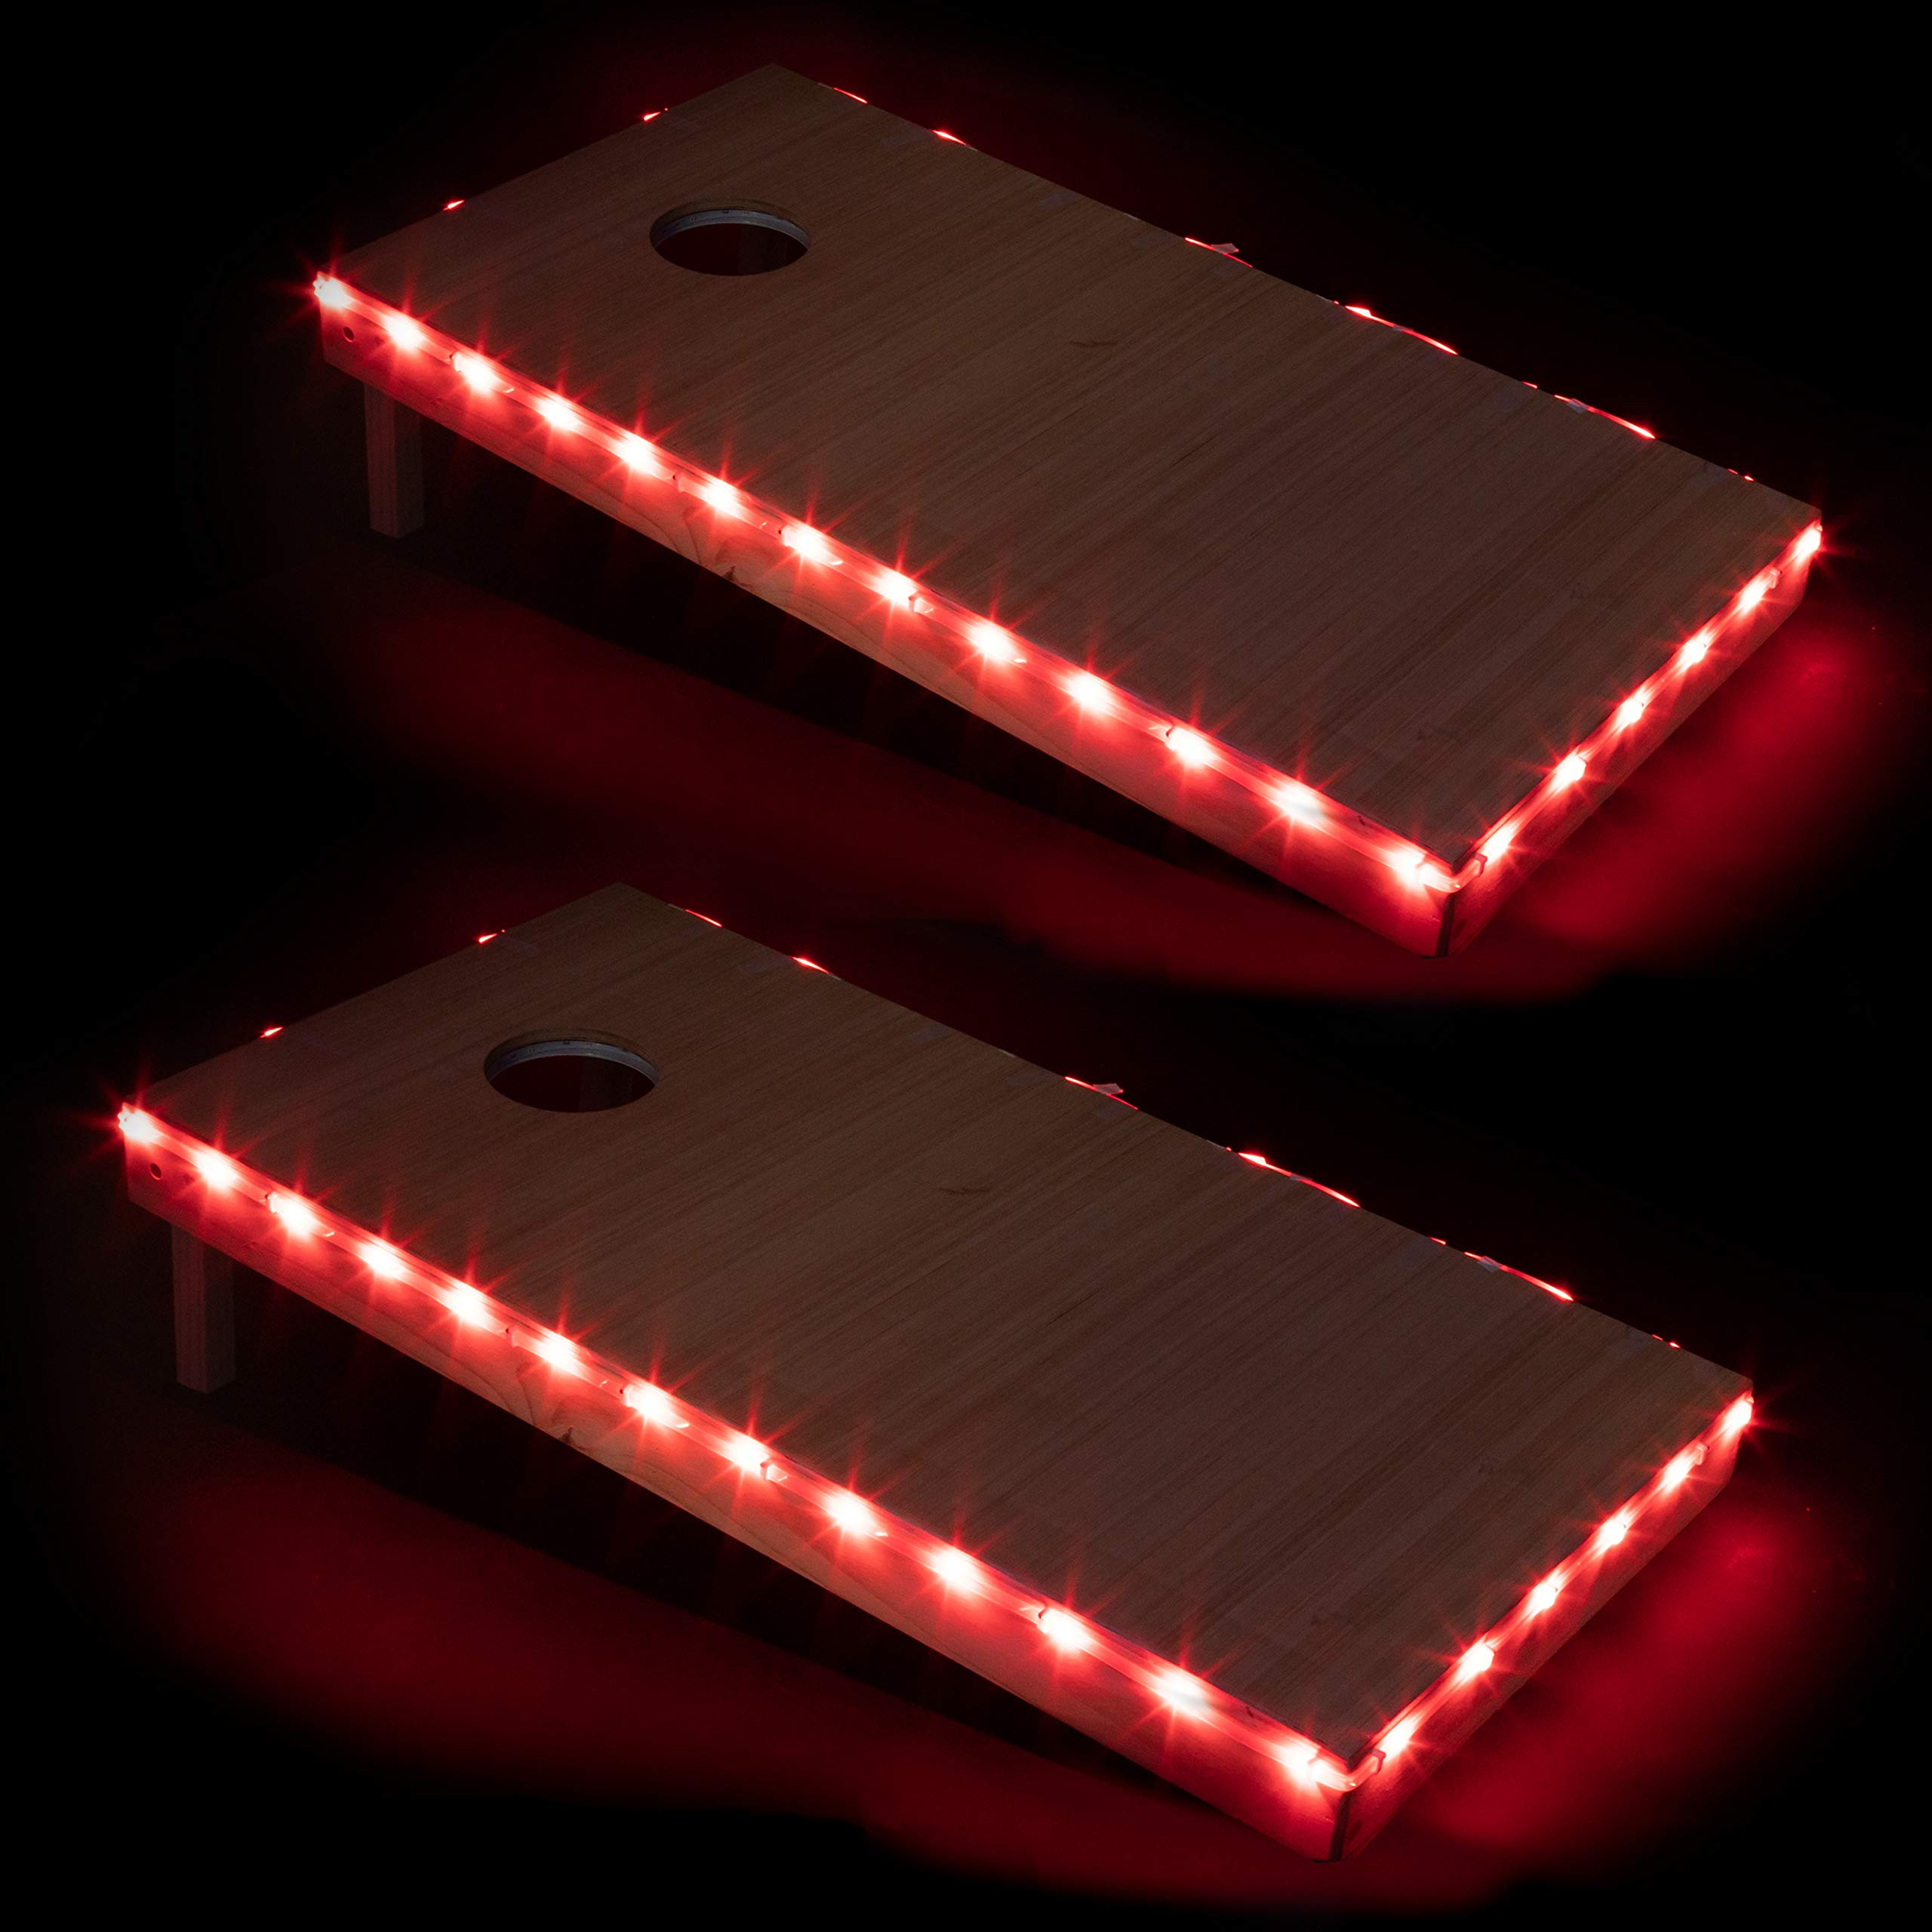 Play Platoon LED Cornhole Board Lights Set of 2, Red - Corn Hole Edge Lighting Kit for Lighted Outdoor Night Games - Bright, Long Lasting, Easy to Install by Play Platoon